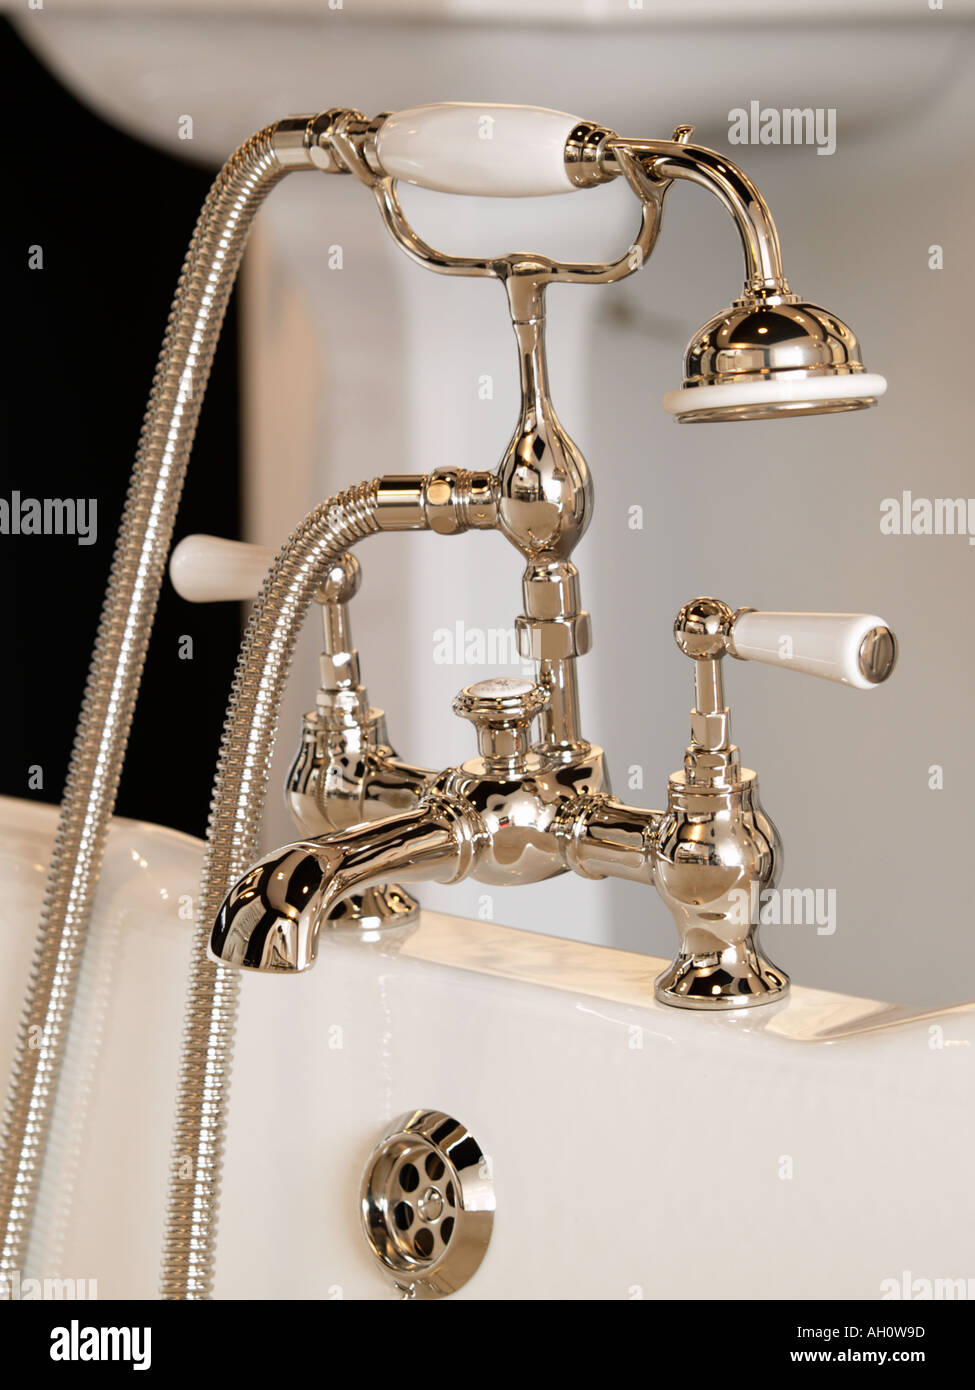 Classically designed crome steel mixing luxury bath faucet with showerhead on edge of bath - Stock Image